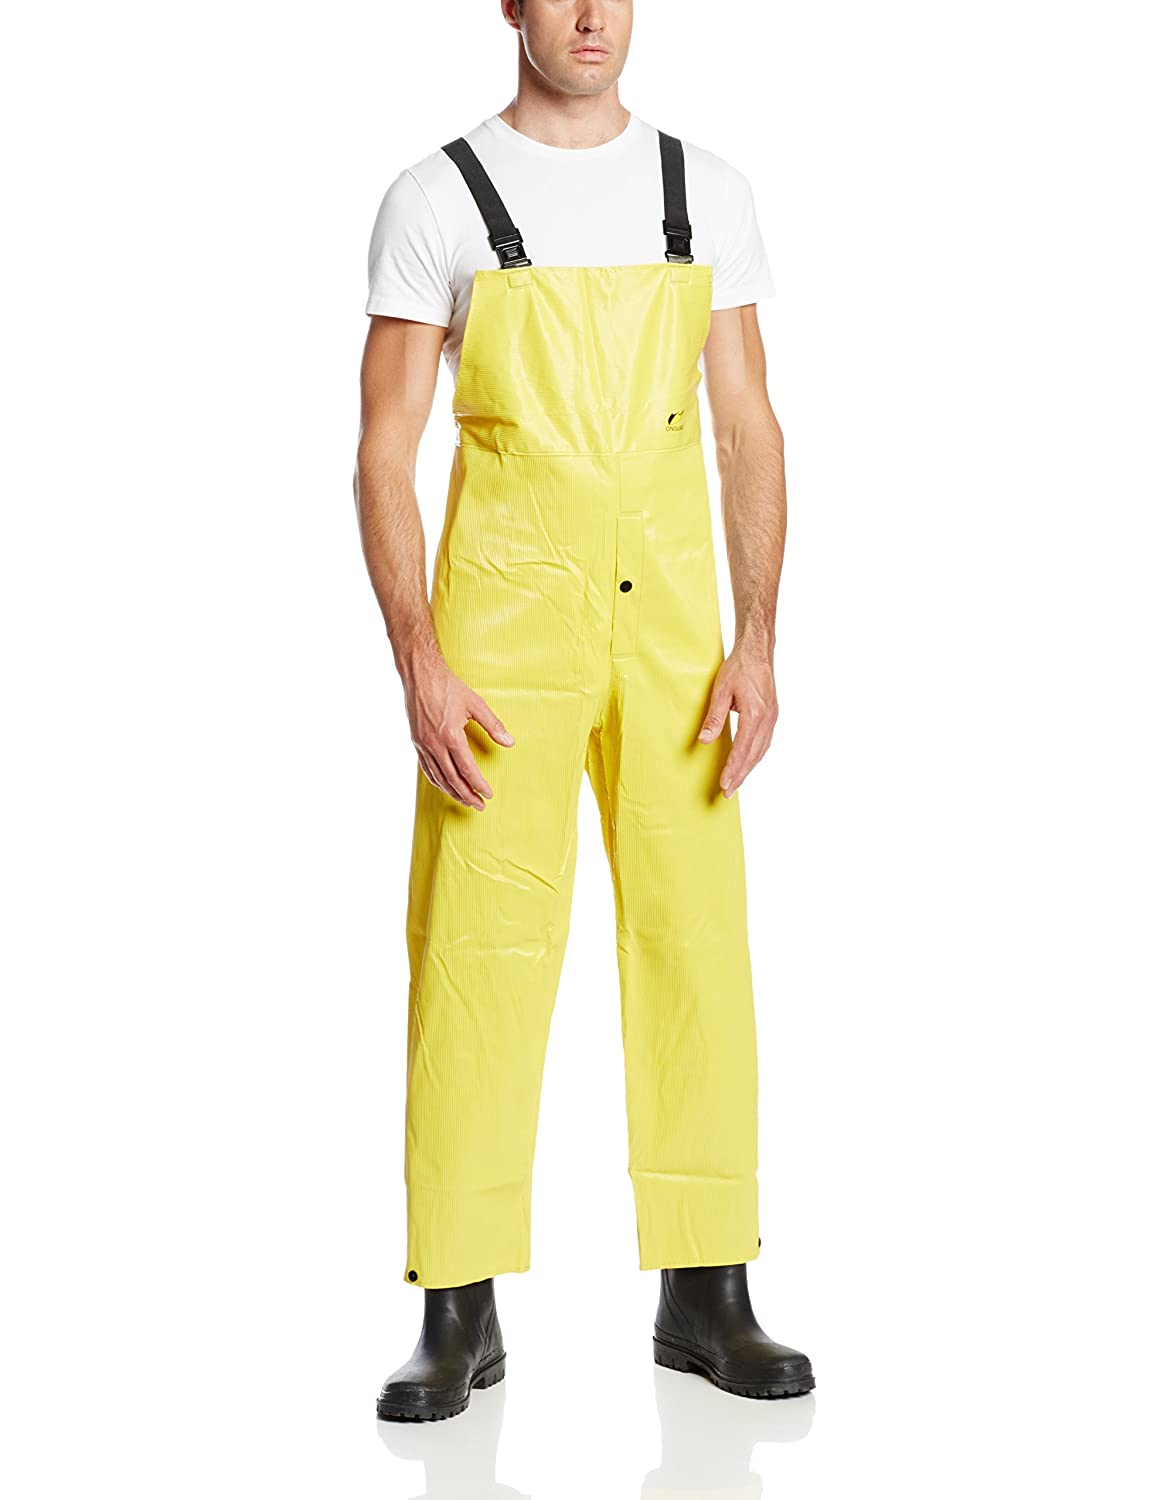 ONGUARD 76052 PVC on Max 54% OFF Polyester Bib Overall Snap Fly Front Bombing free shipping with